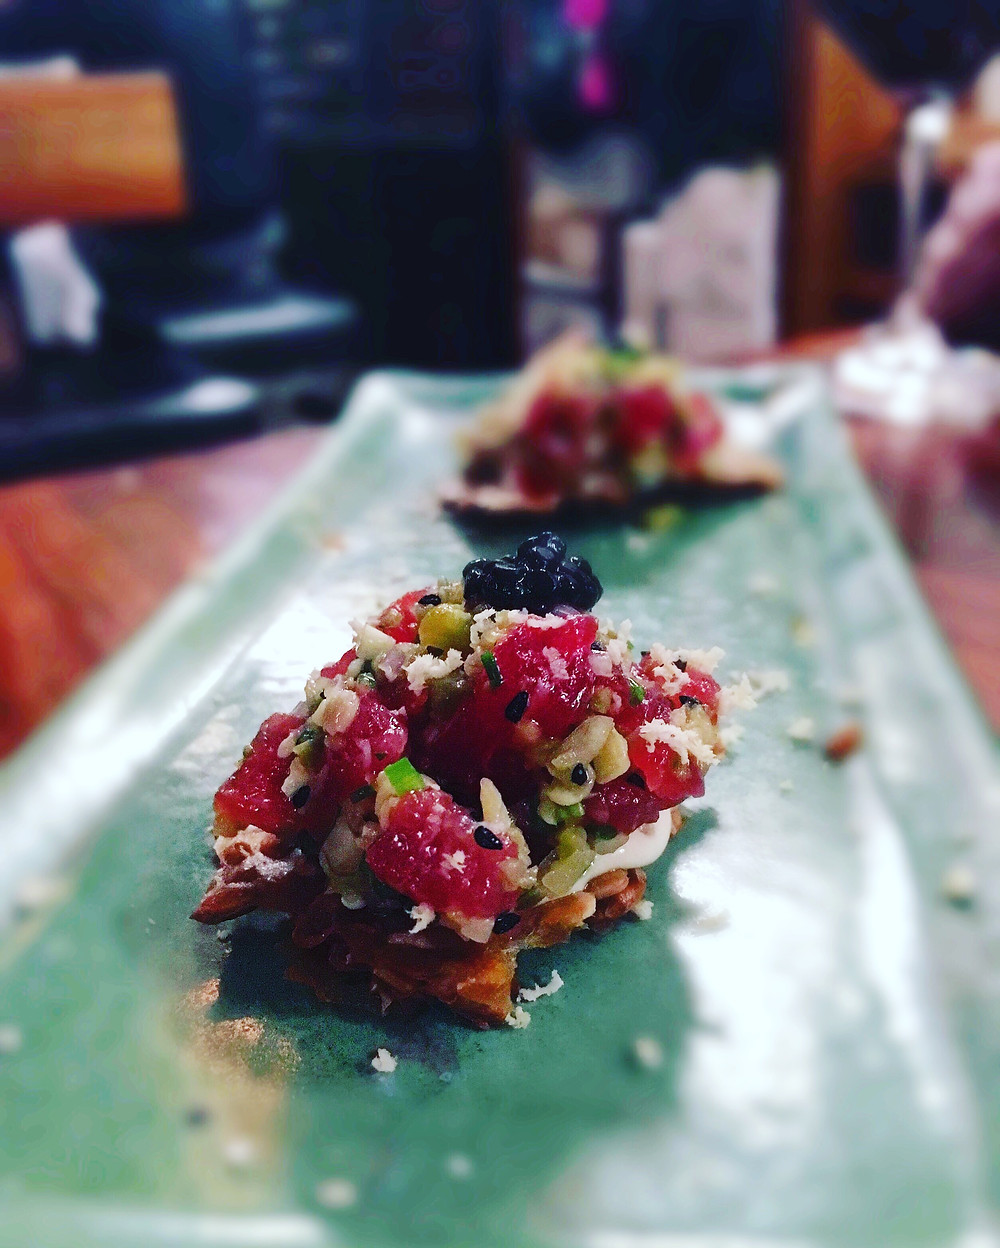 Melbourne restaurant reviews | MoVida Aqui | Tuna tartar